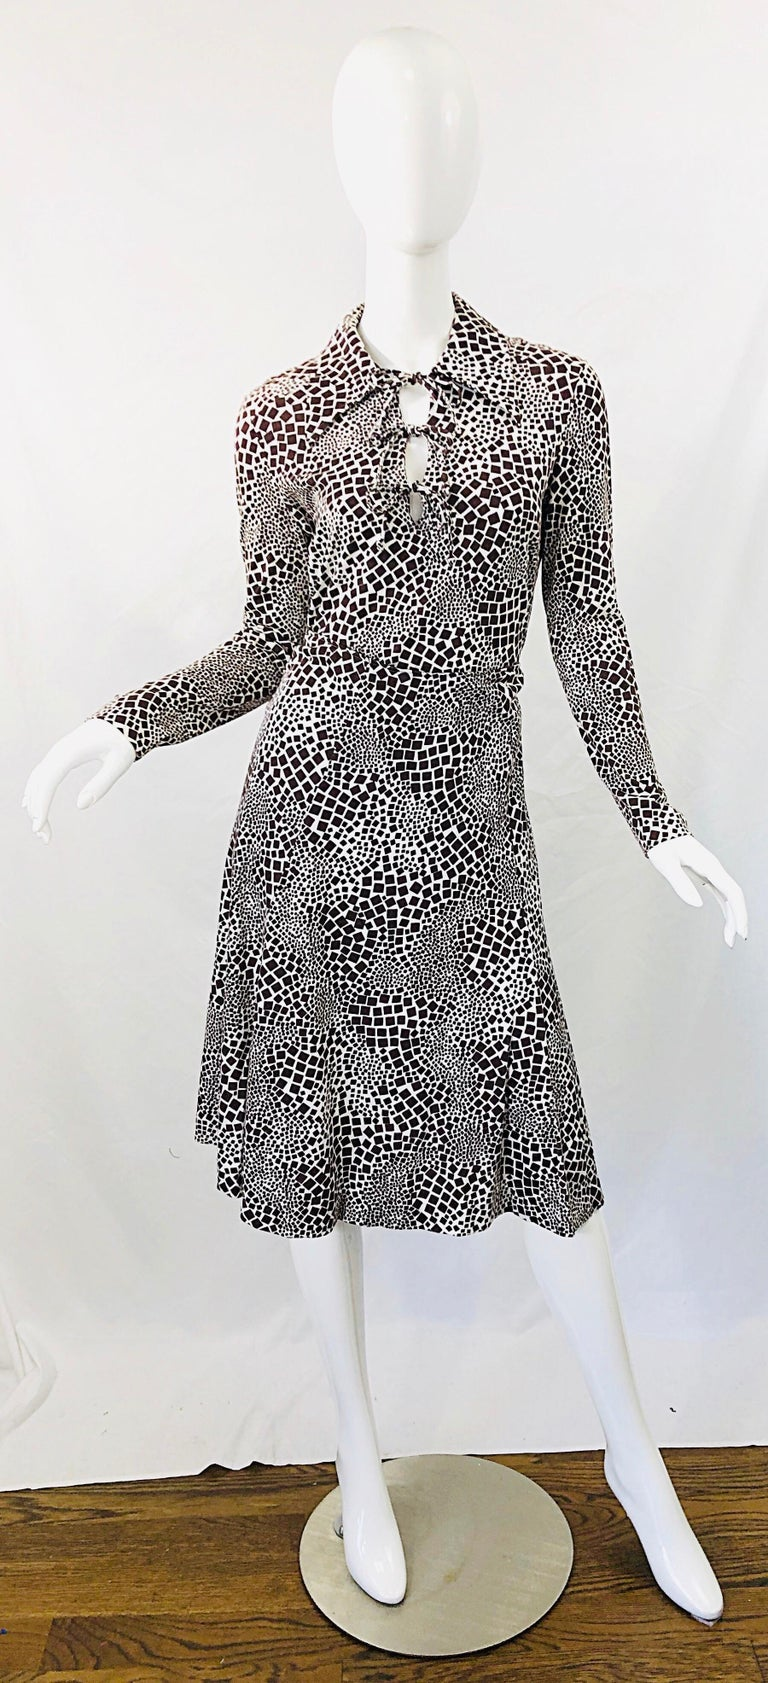 Chic 1970s DIANE VON FURSTENBERG chocolate brown and white abstract print cut-out shirt and skirt. Soft rayon and cotton blend fabric. Cut-out at center neck with three ties. Skirt features hidden metal zipper up the back with hook-and-eye closure.